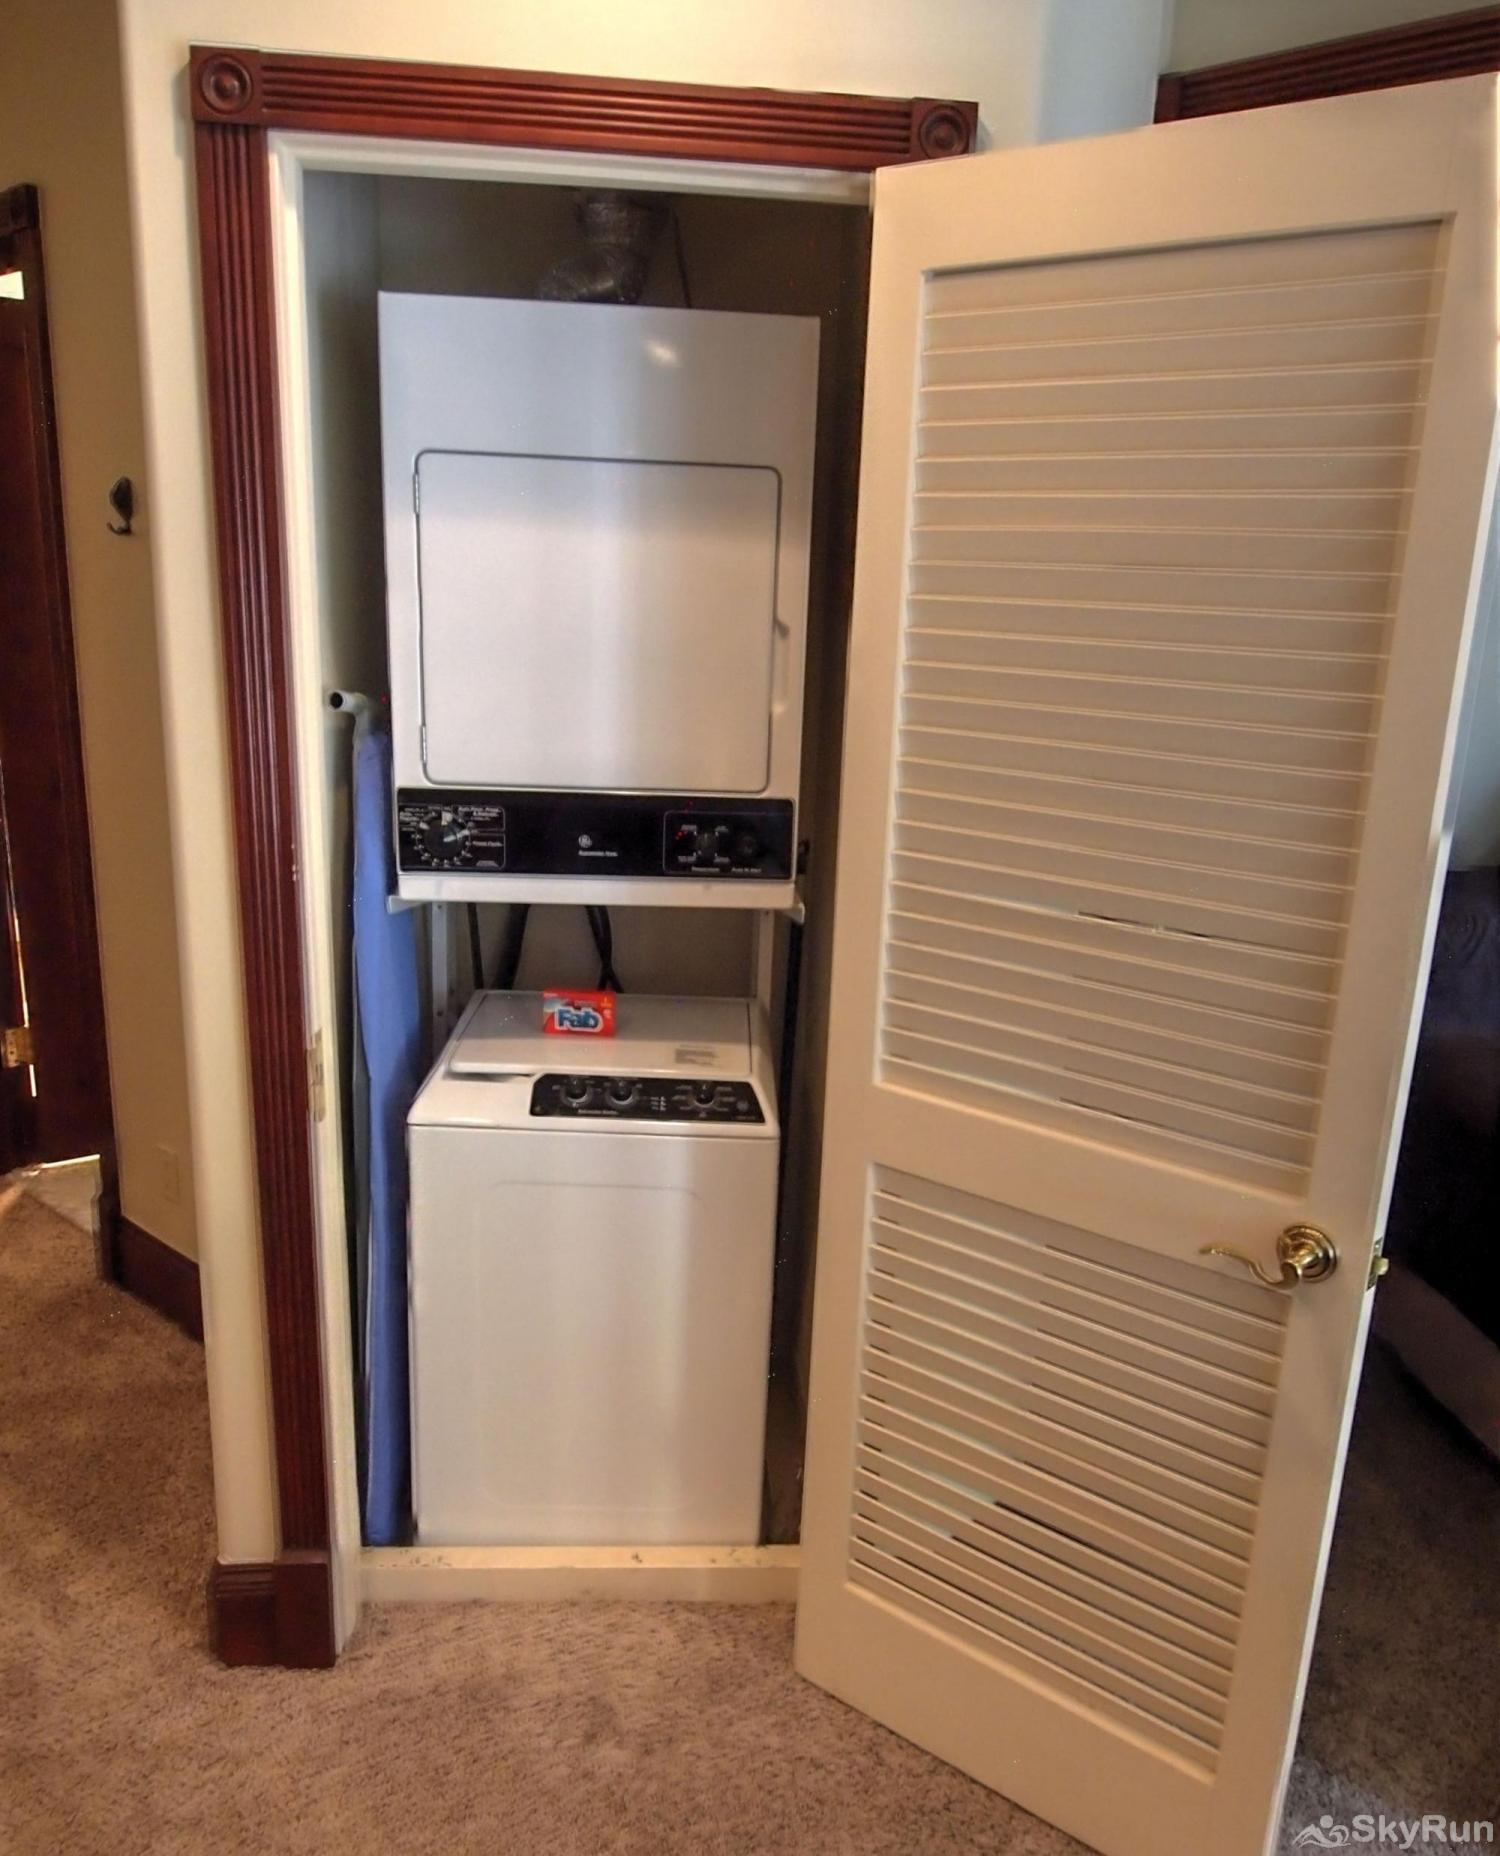 Ballard House 207 3BR Washer/Dryer